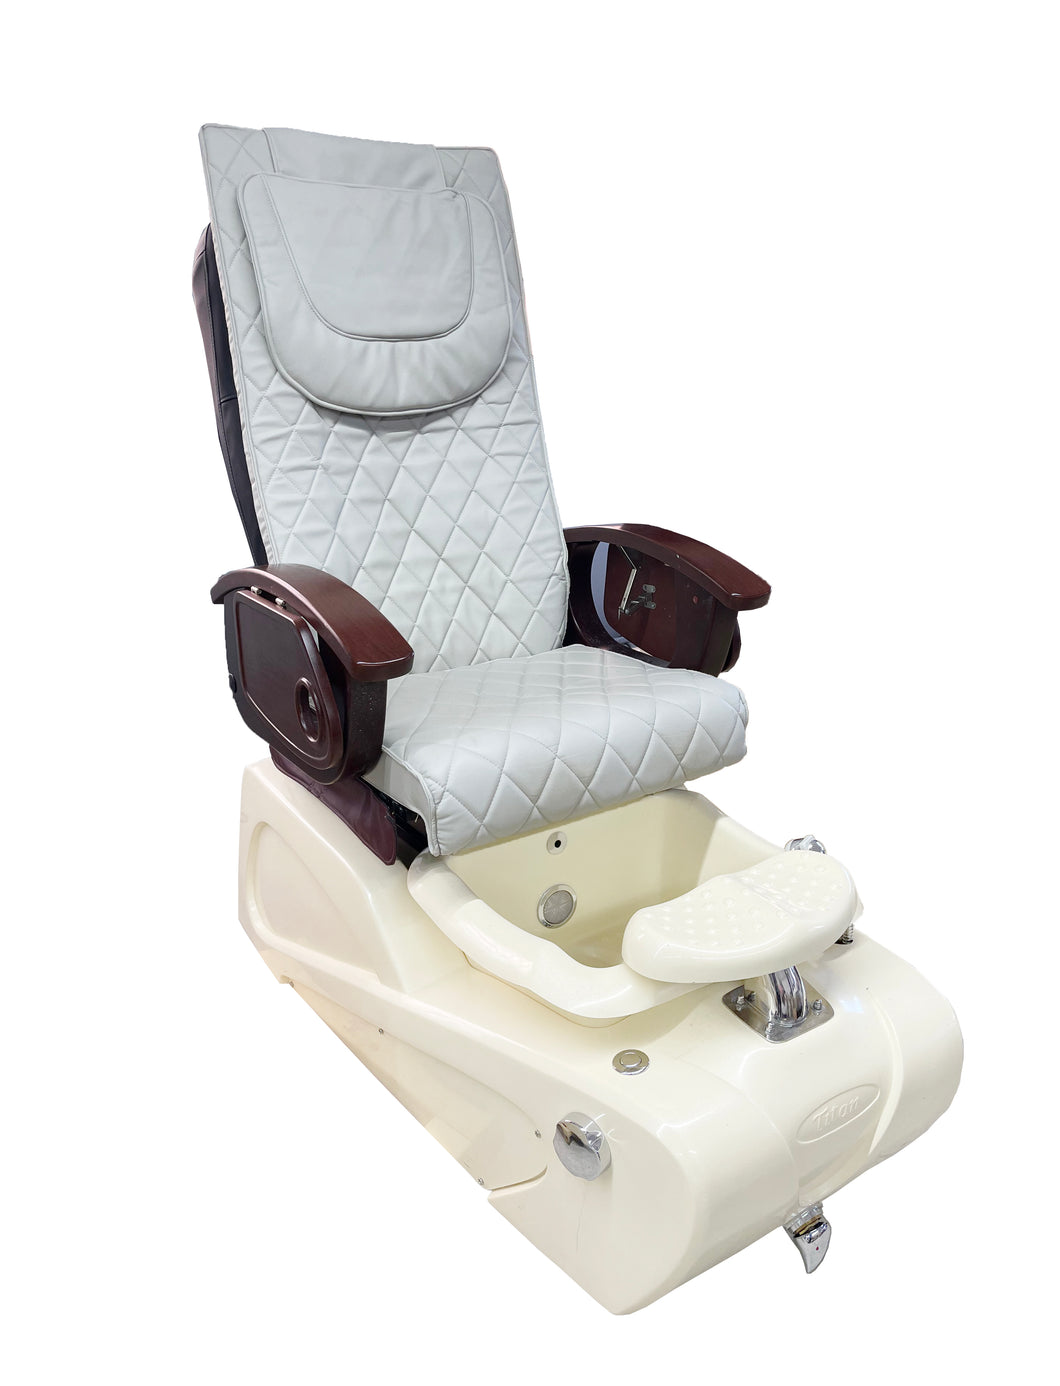 5 in stock - Titan Re-Newed Pedicure Spa - Call or text us for shipping quote 7044903934